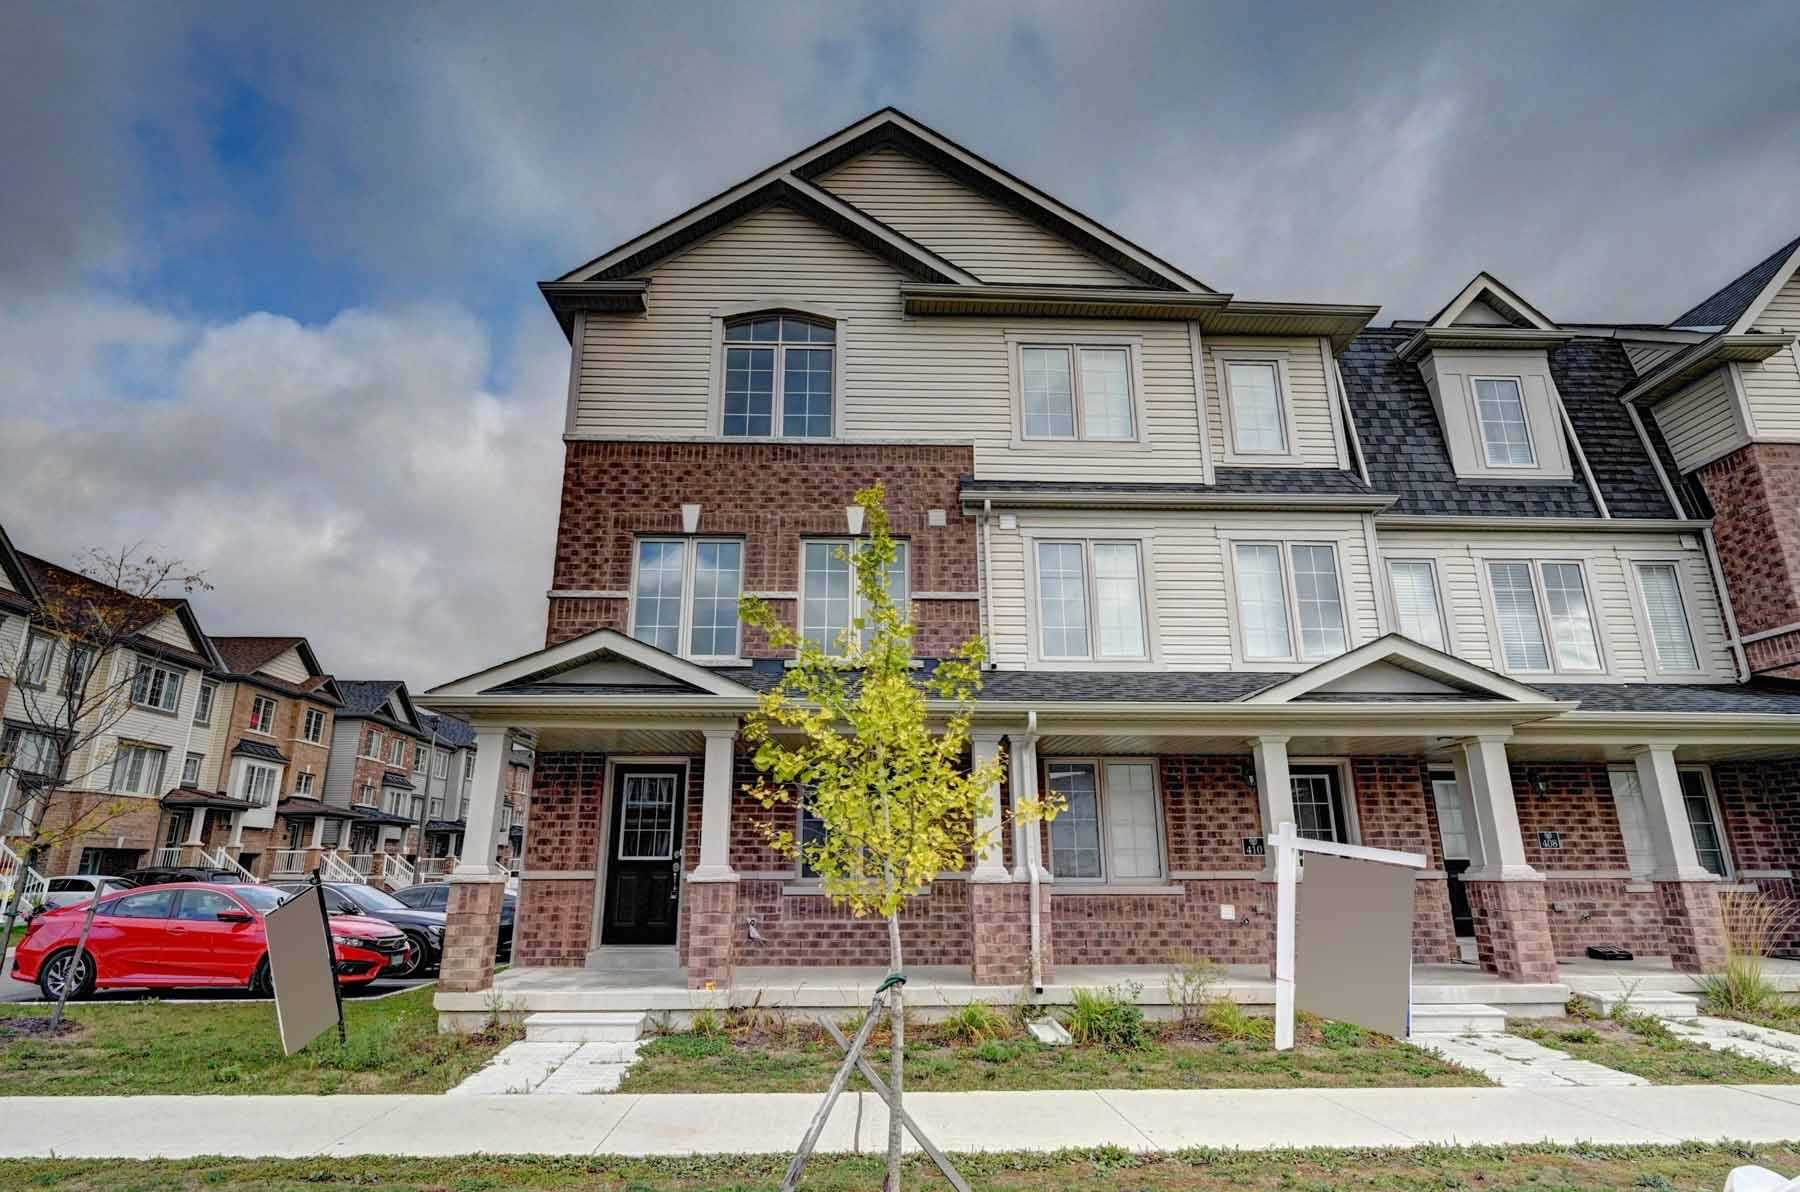 Freehold End Unit With 5 Bedrooms In Total, Very Spacious & Full Of Light Town Home In The Most Desirable Location Of Cambridge. Open Layout Concept. Minutes Away From Hwy 401, Schools, Malls, Conestoga College And Much More. This Opportunity Is Not To Be Missed.